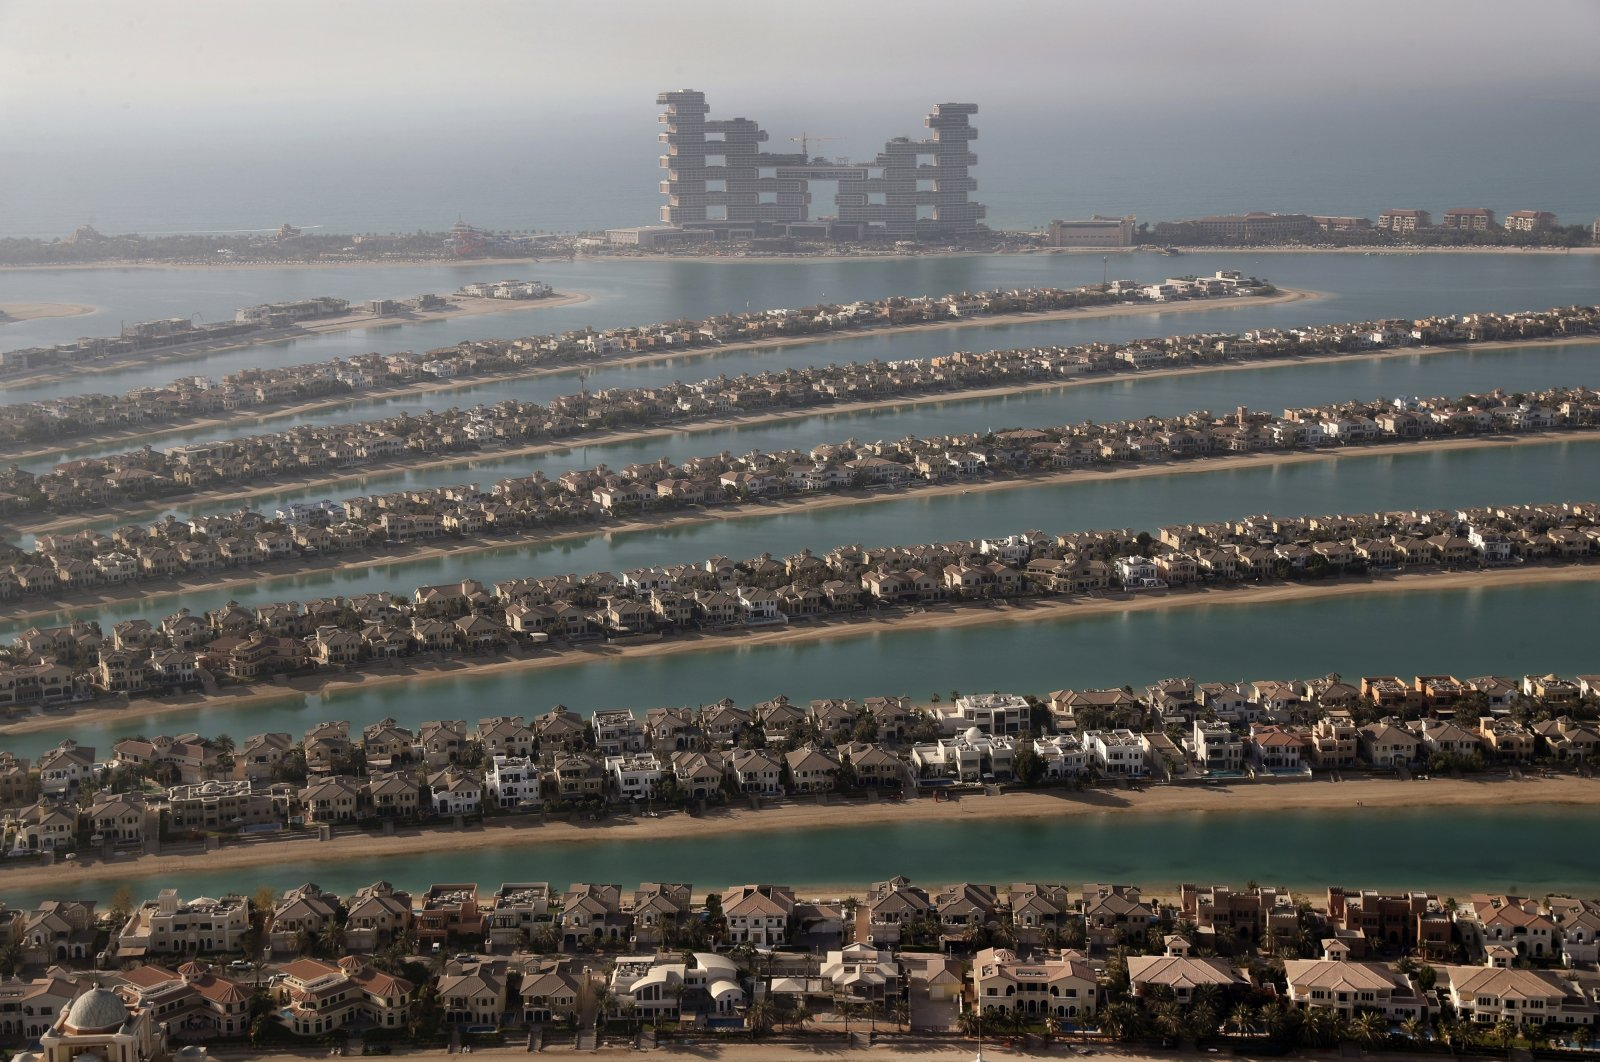 Villas on the fronds of Jumeirah Palm Island are seen from the observation deck of The View at The Palm Jumeirah, in Dubai, United Arab Emirates, April 6, 2021. (AP Photo)